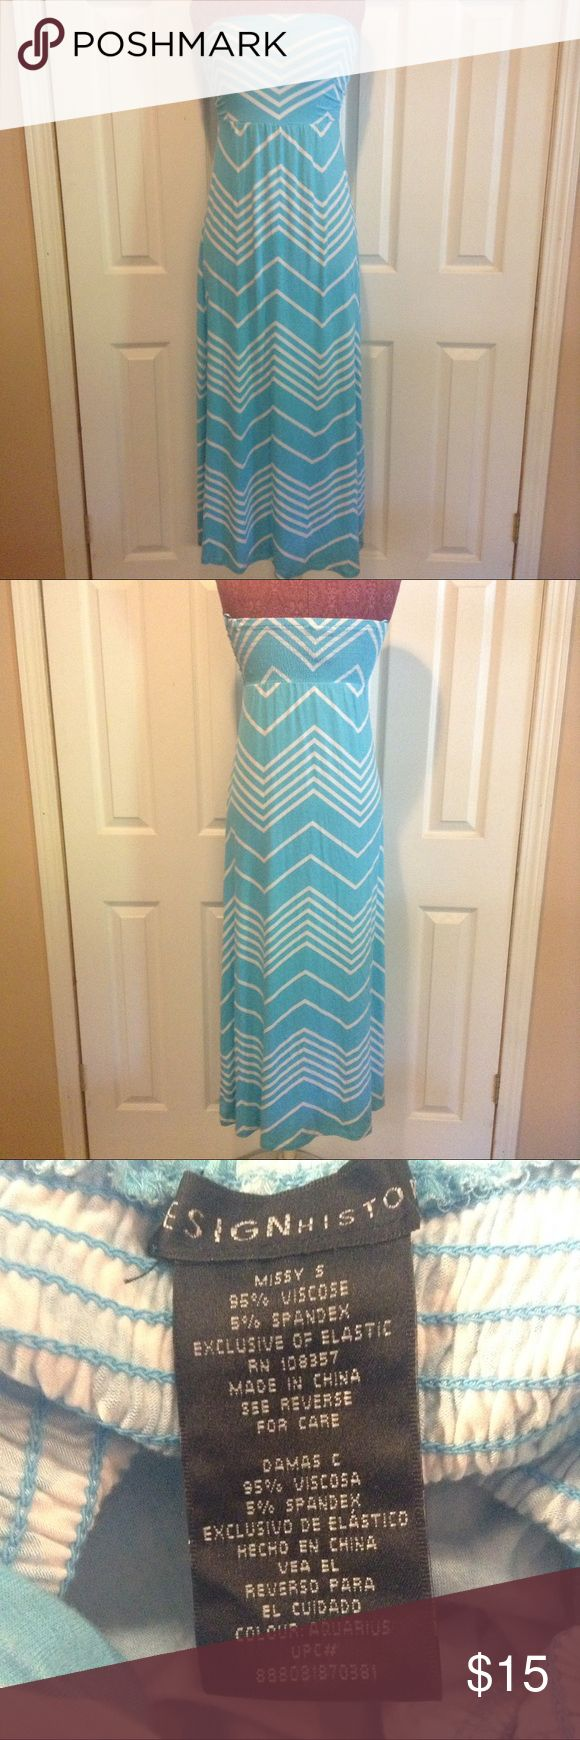 Designhistory size S blue and white chevron dress Designhistory, blue and white, size S, chevron, strapless, NWOT, never been worn, dress. Great shape no stains or tears. Dresses Strapless